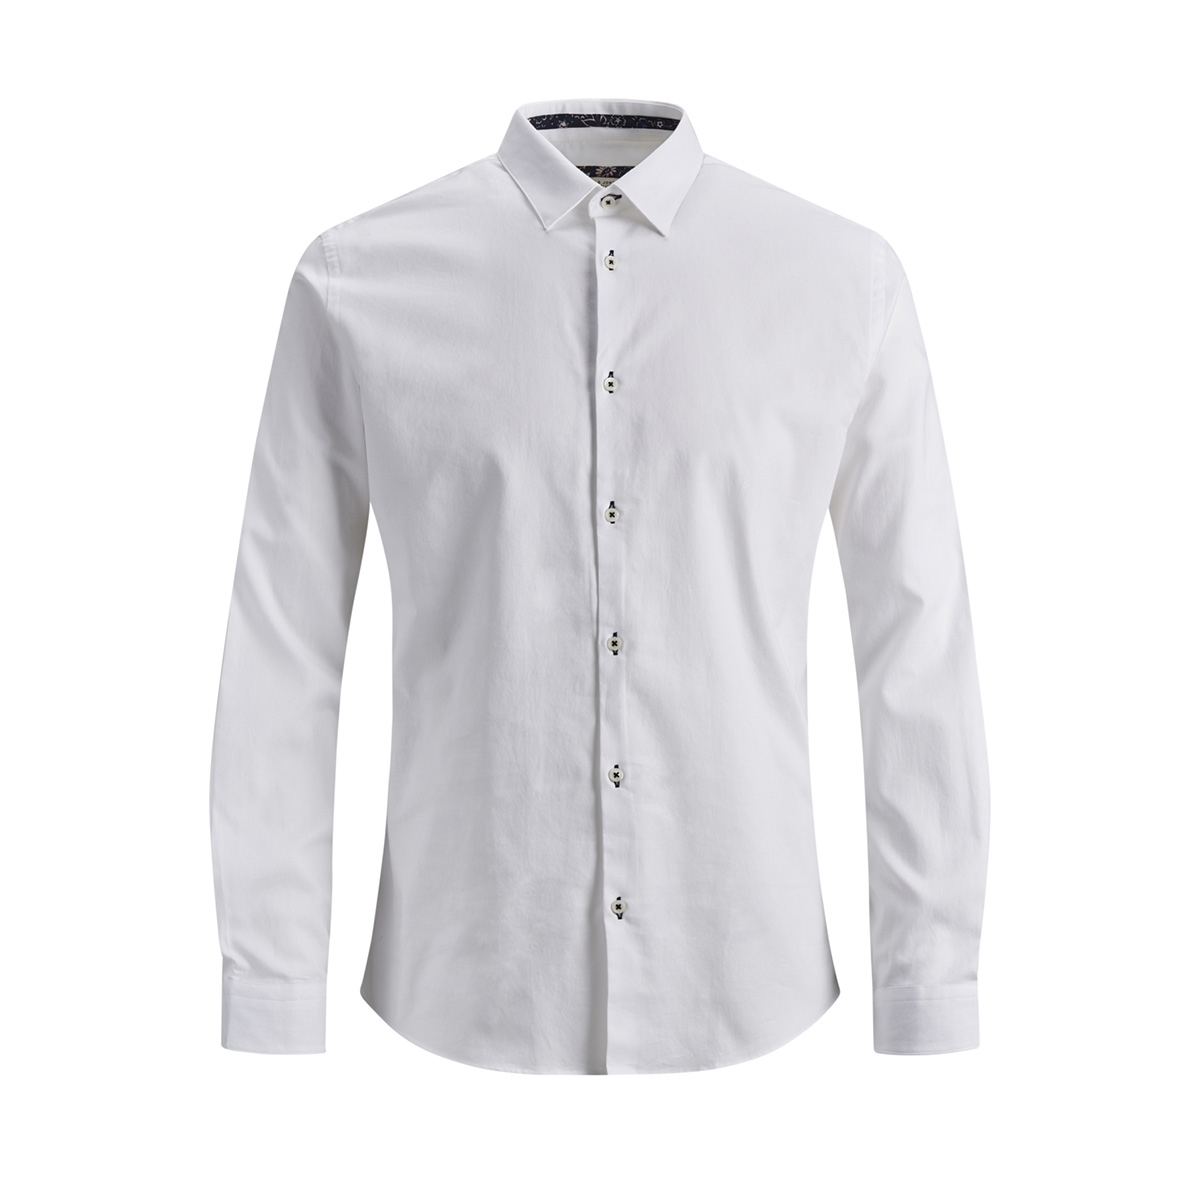 jprmarco detail shirt l/s 12145537 jack & jones overhemd white/solid/slim